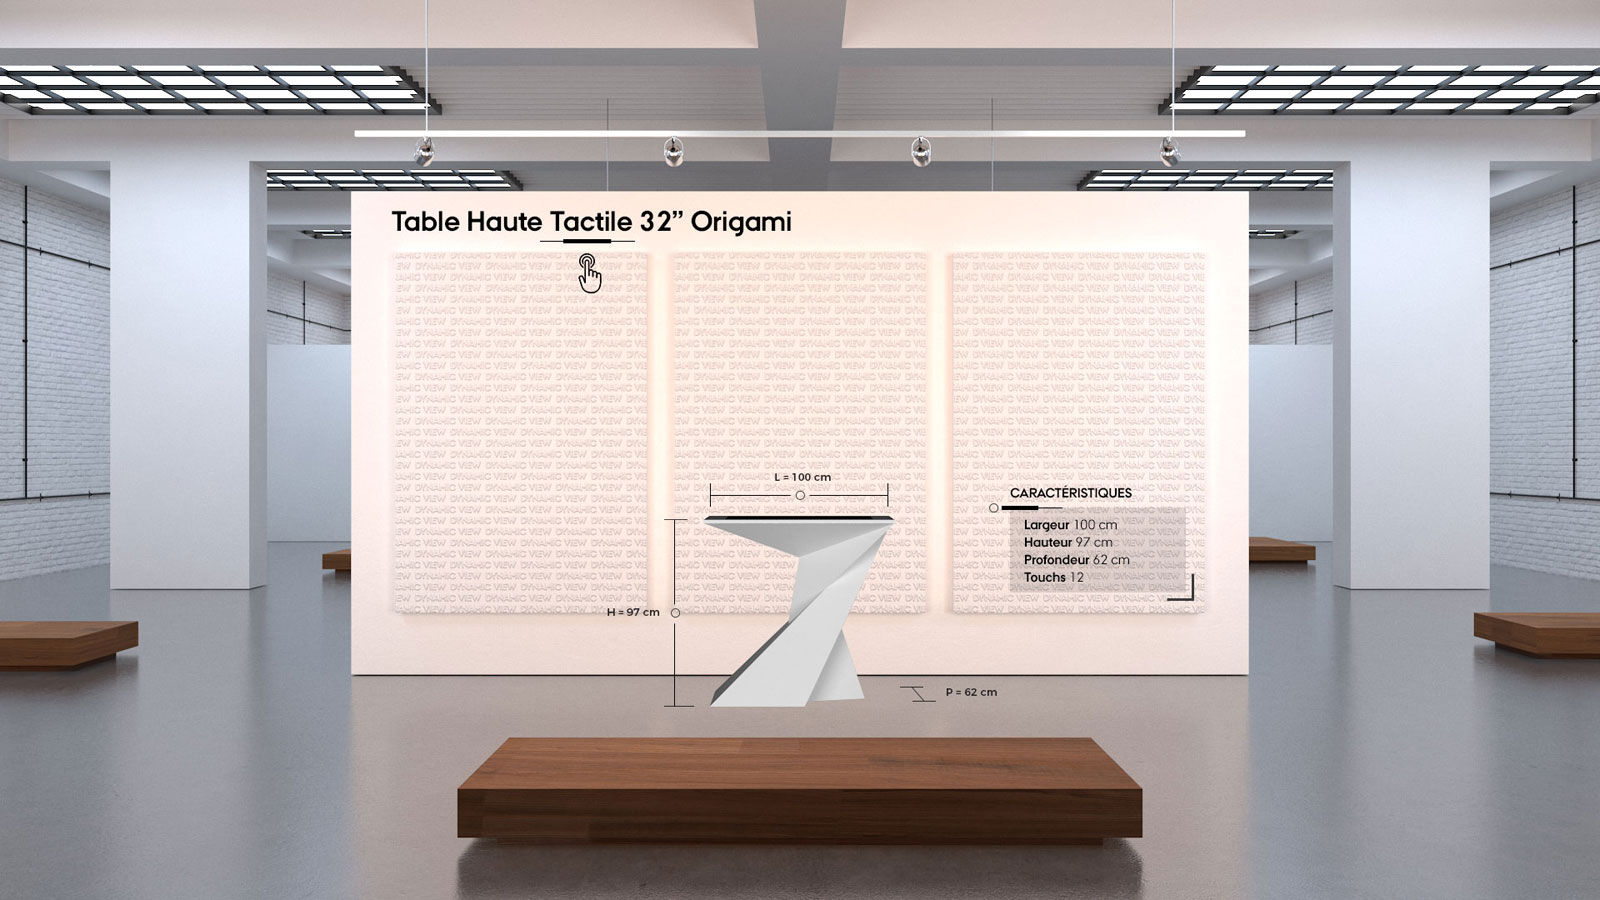 35 Table Haute Tactile 32'' Origami